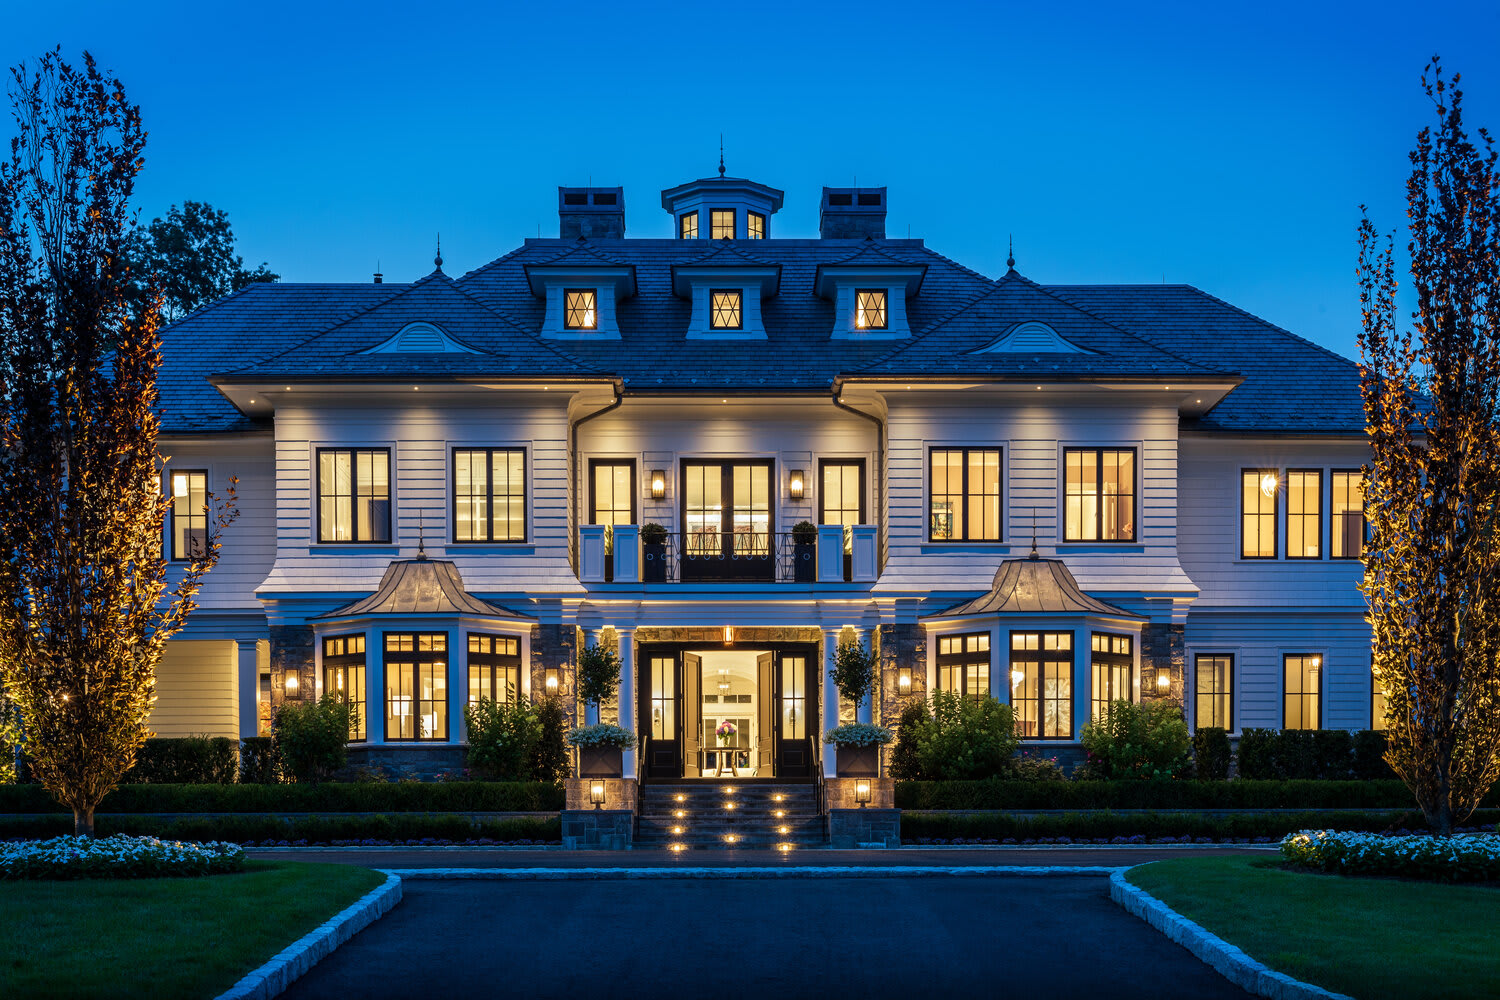 THE ULTIMATE NEW BUILD: SETTING THE NEXT STANDARD IN LUXURY